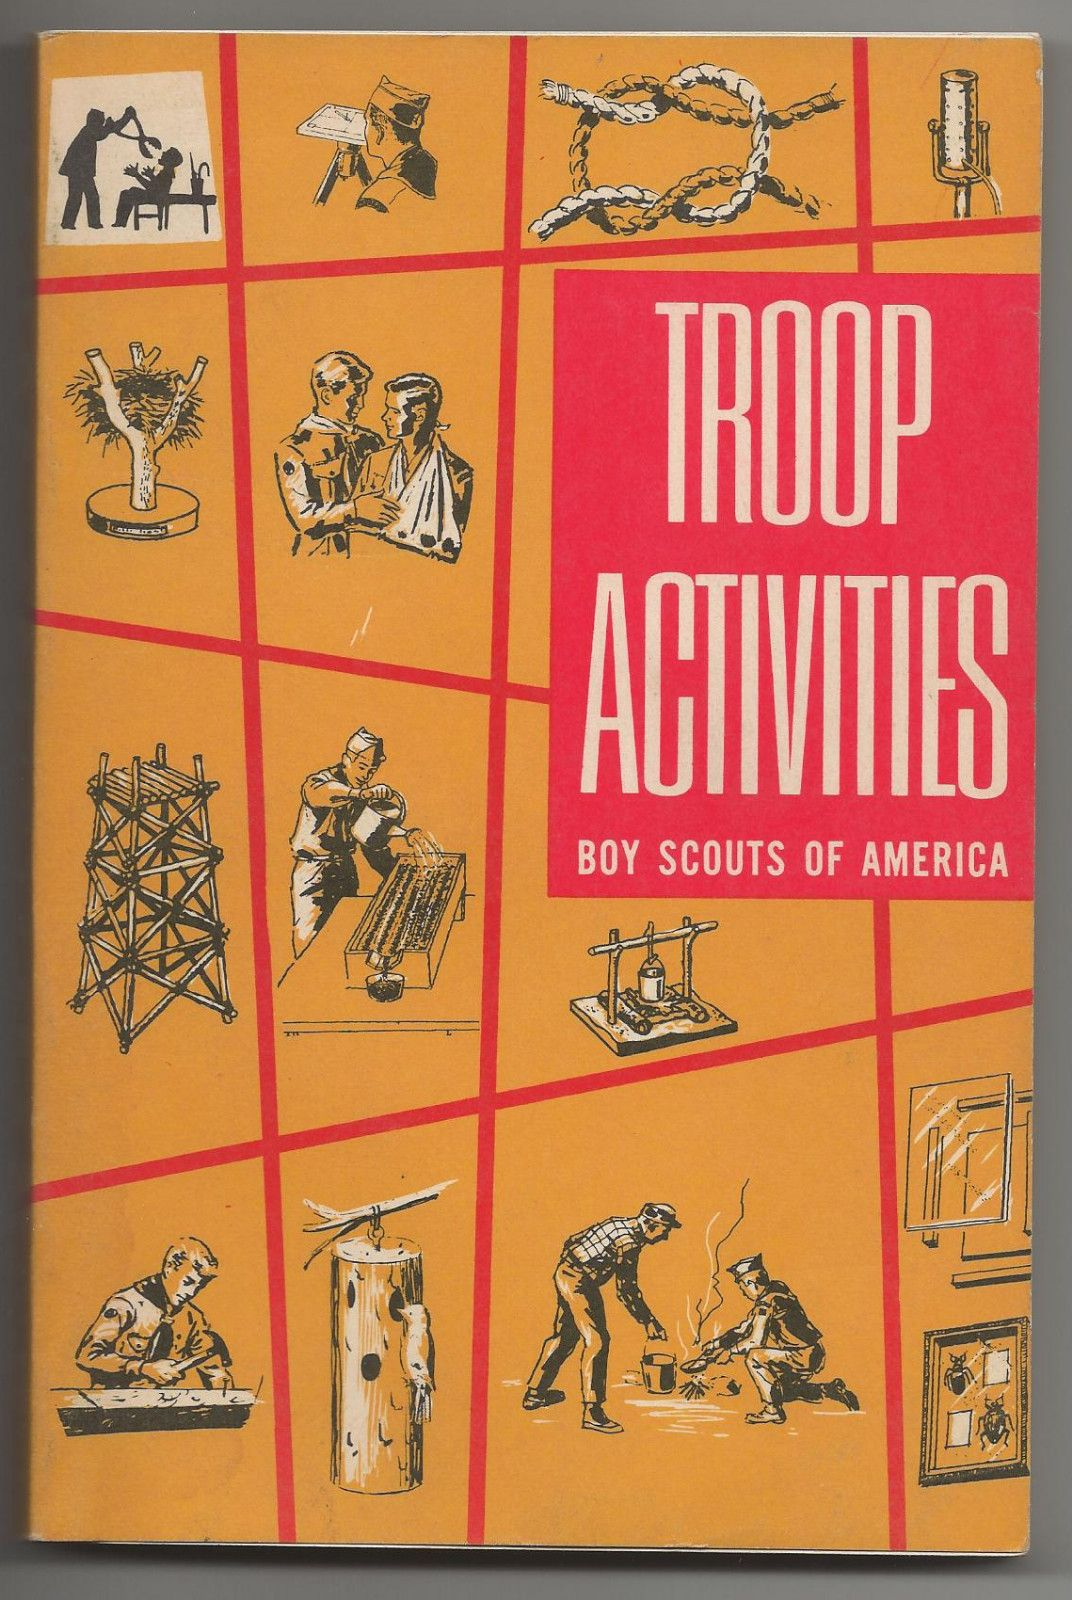 Vintage Boy Scout Activity Book